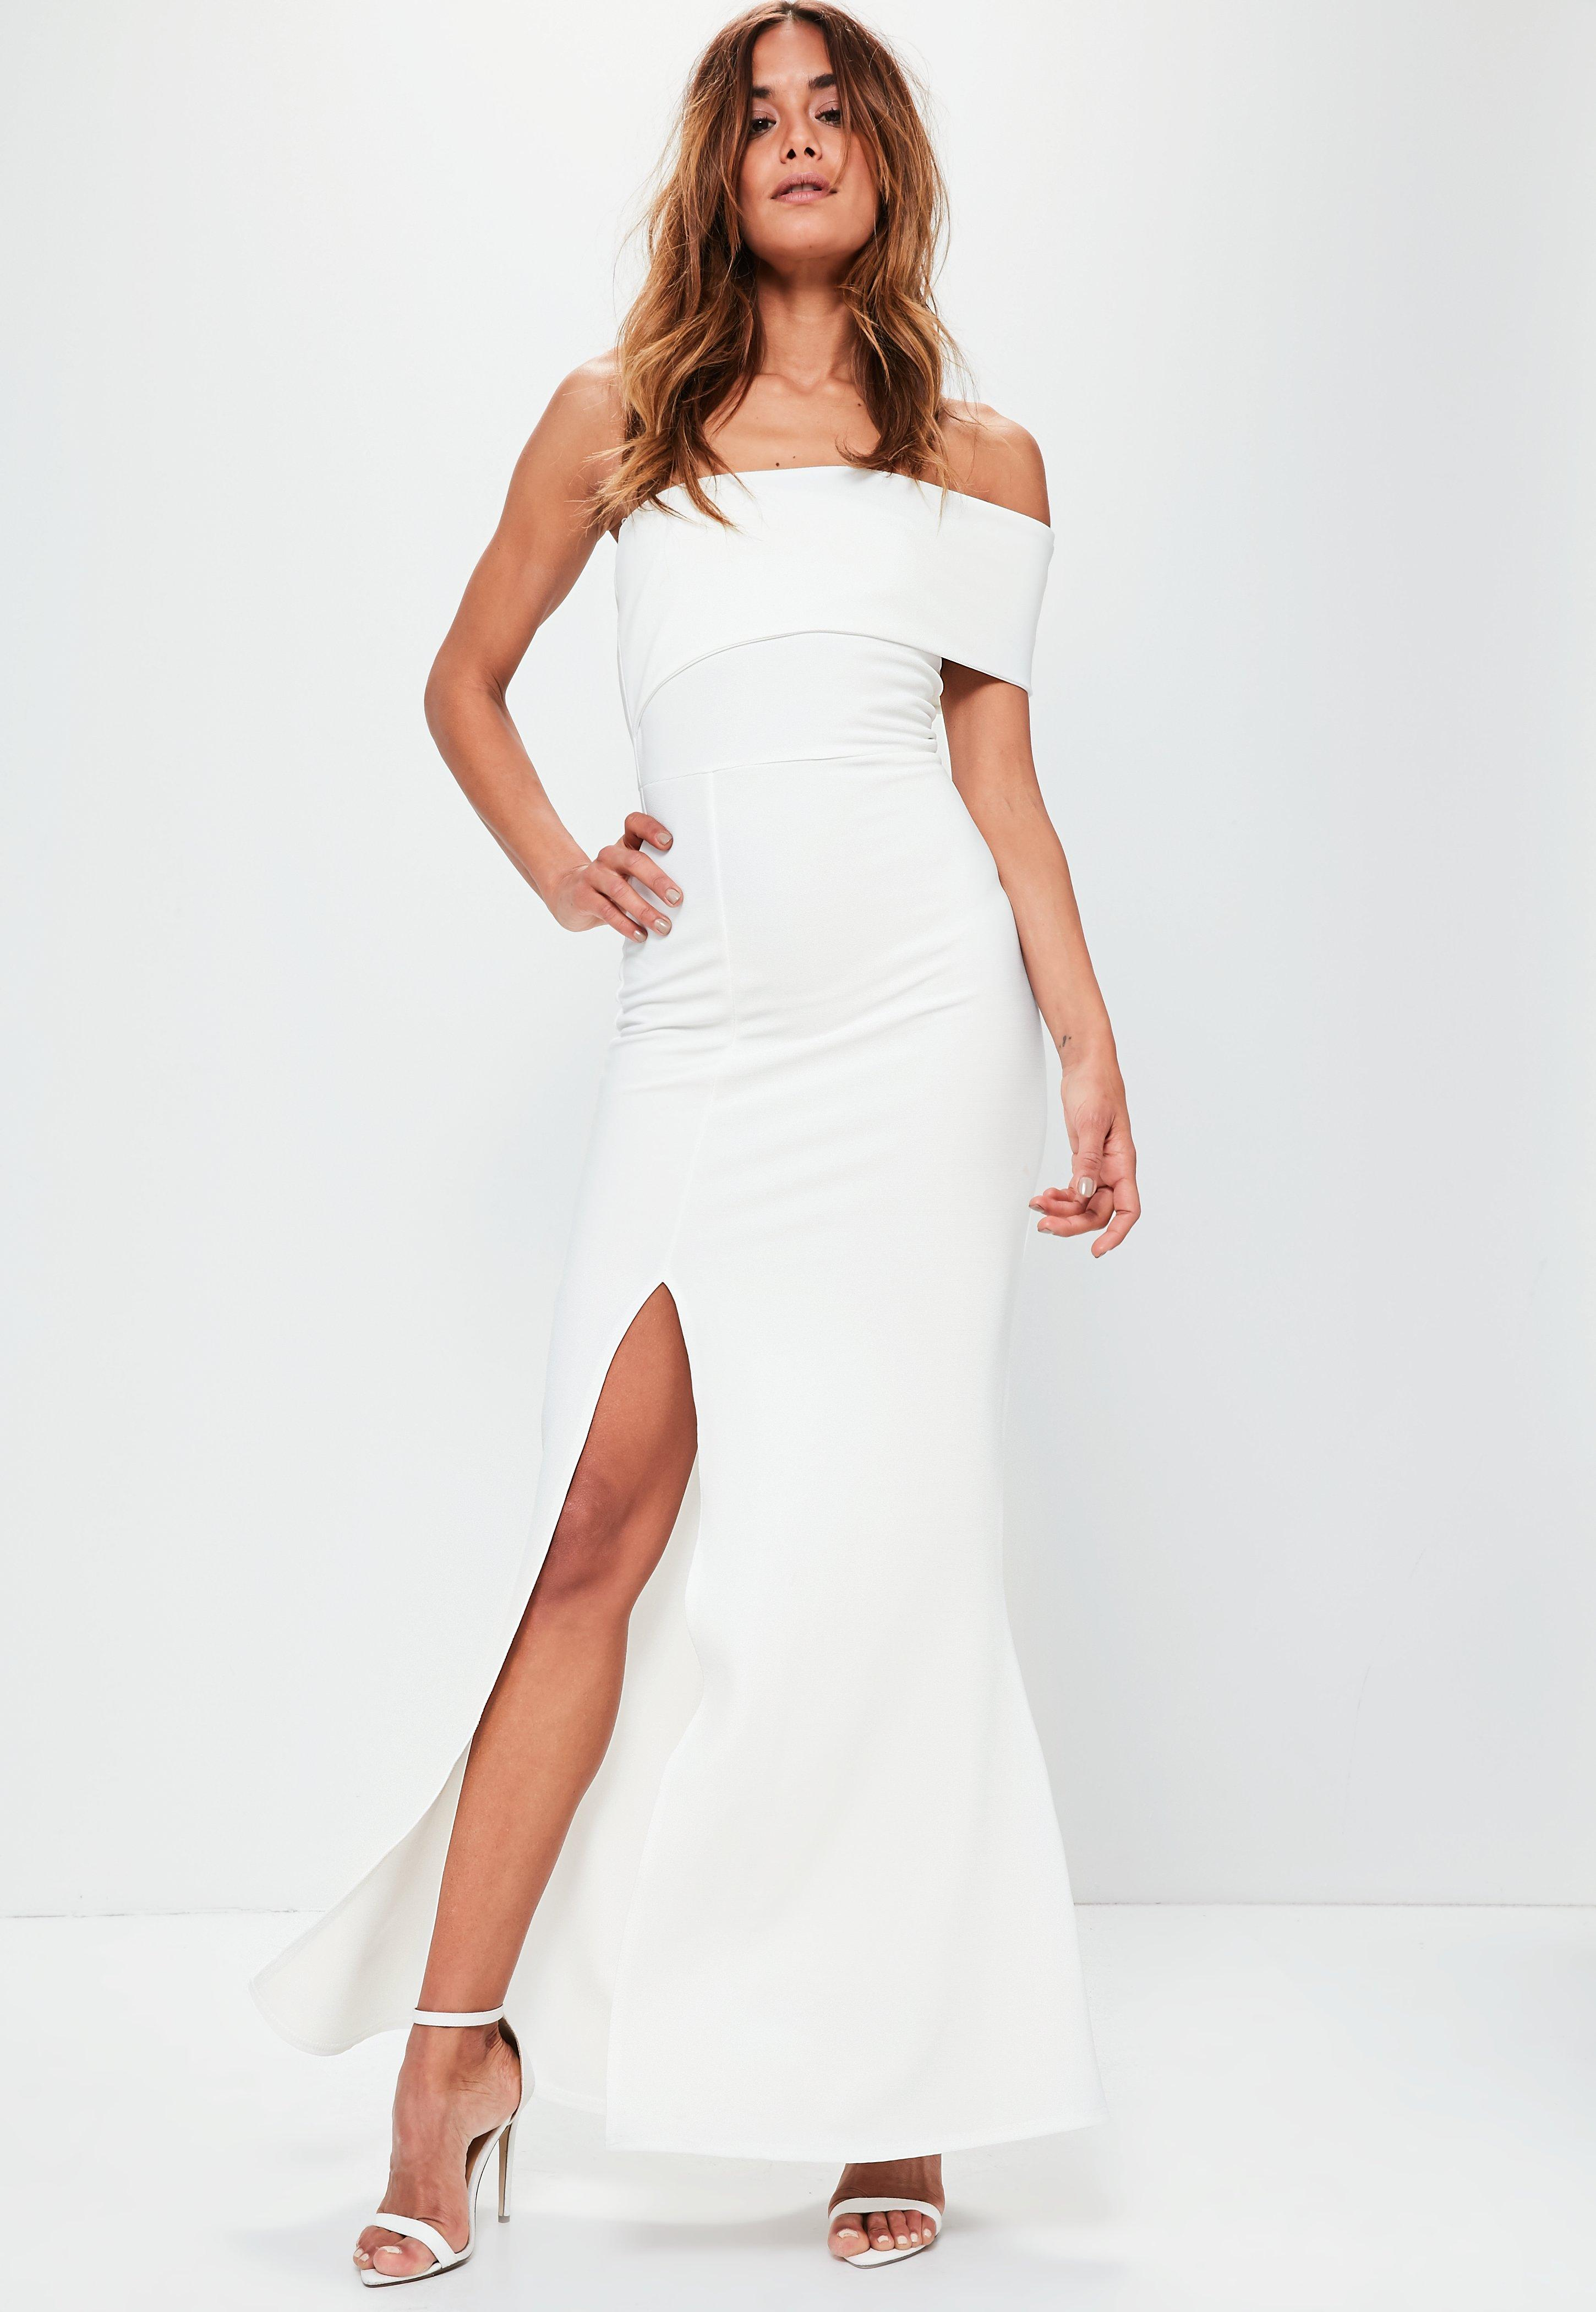 One Shoulder Dresses | One Sleeve Dresses from $12 - Missguided